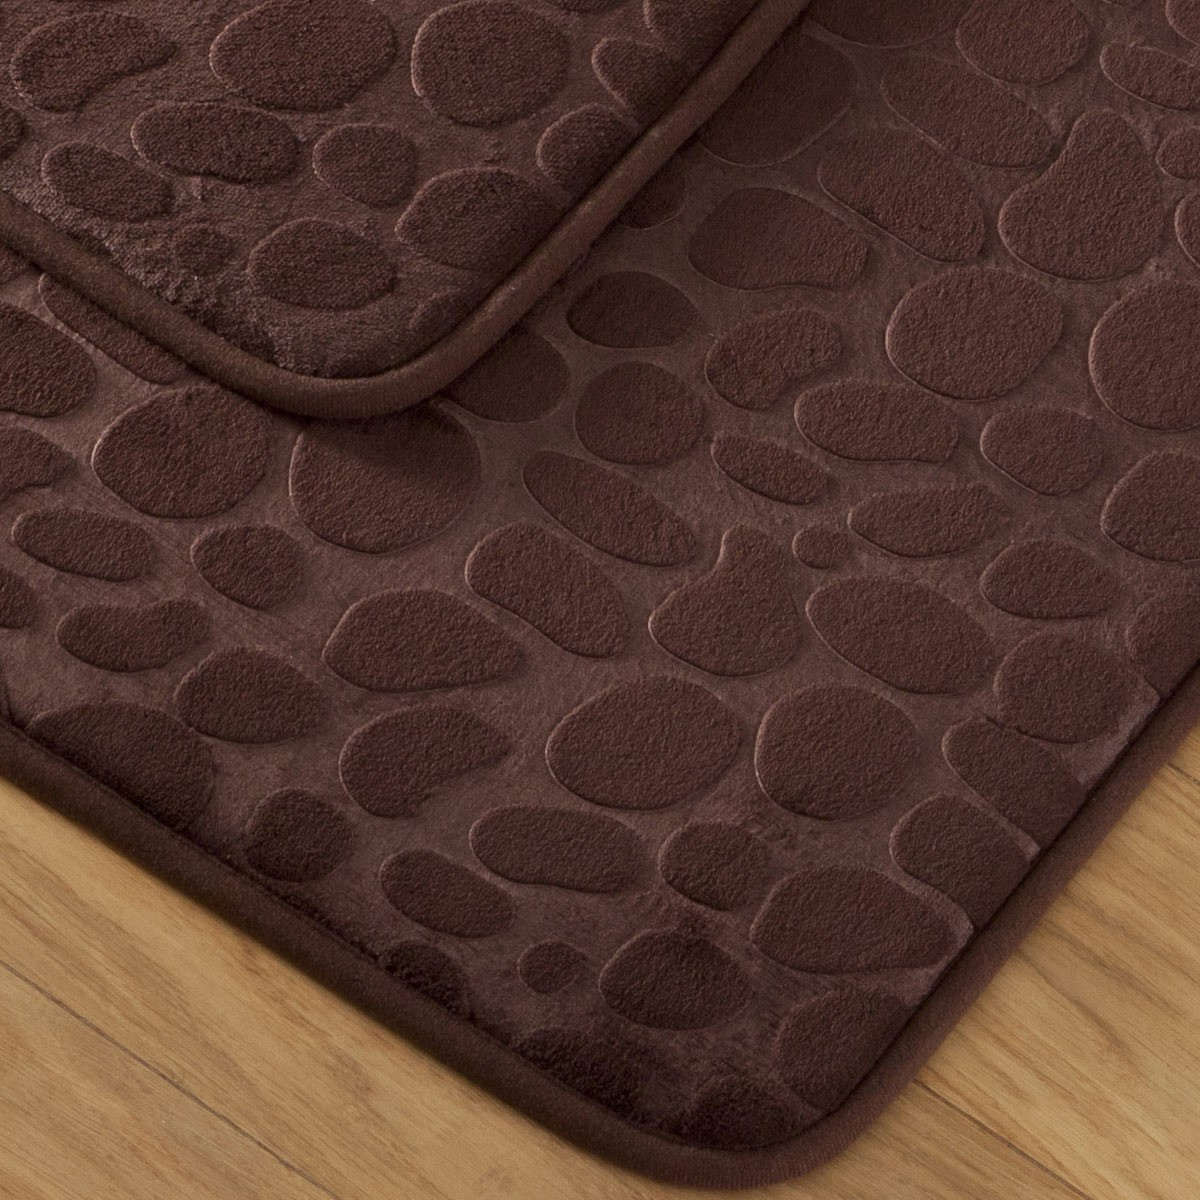 tapis bain galet marron tapis m moire de forme tradition des vosges. Black Bedroom Furniture Sets. Home Design Ideas